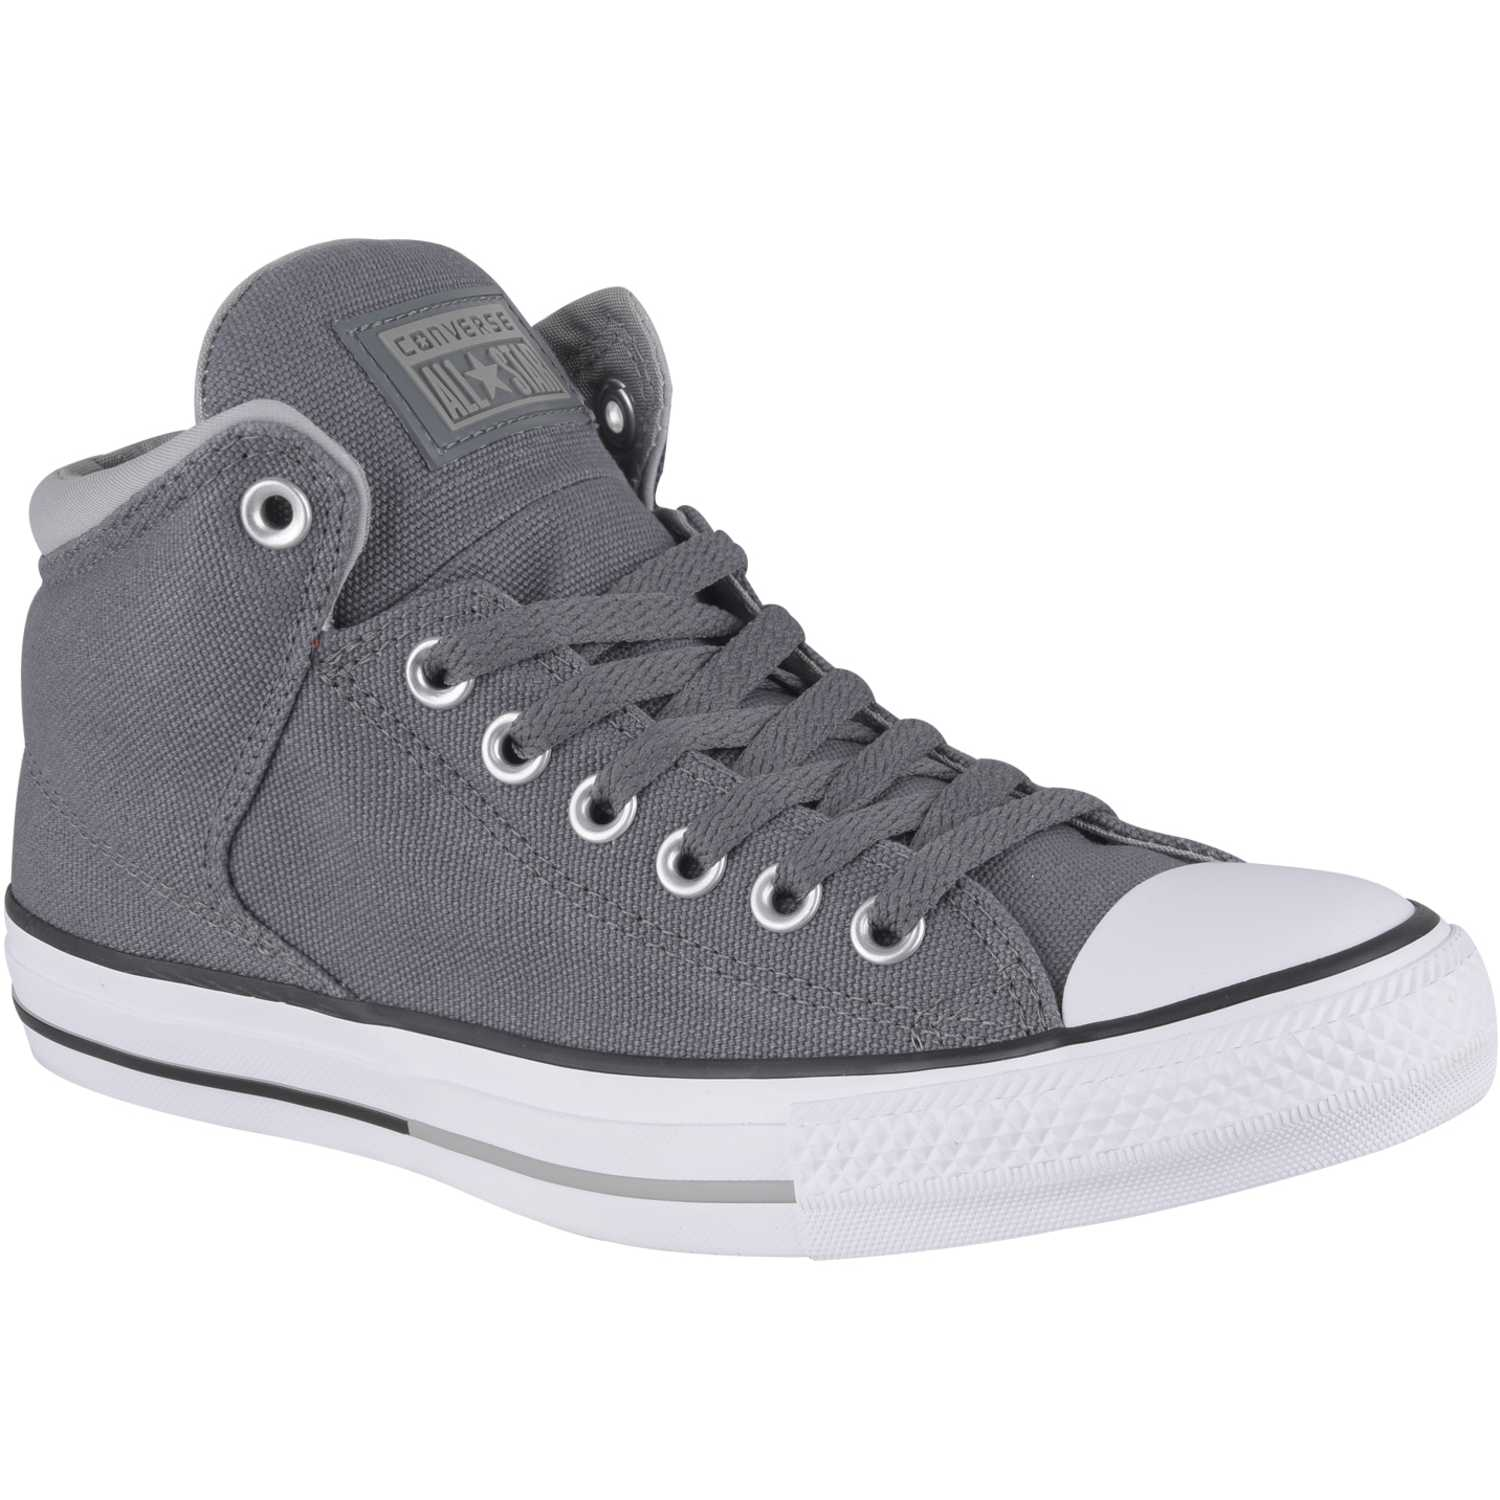 29386c67 Zapatilla de Hombre Converse Gris / Blanco ct as high street hi ...